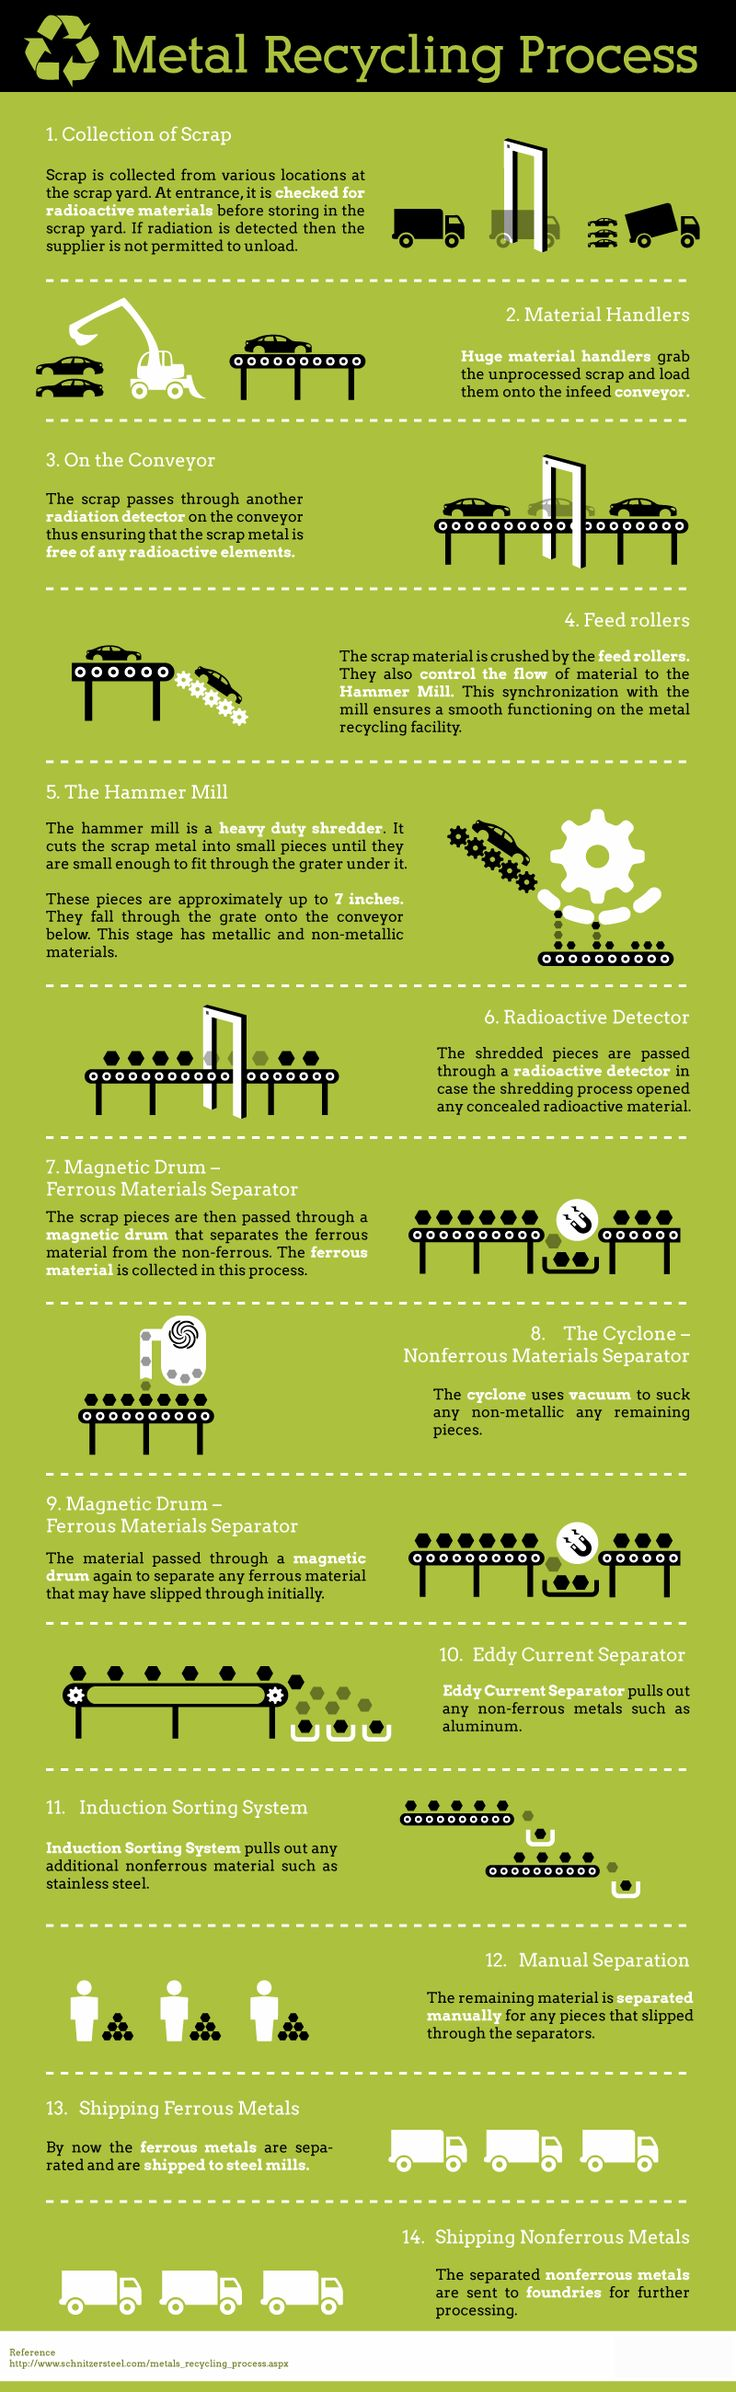 infographic metal recycling process